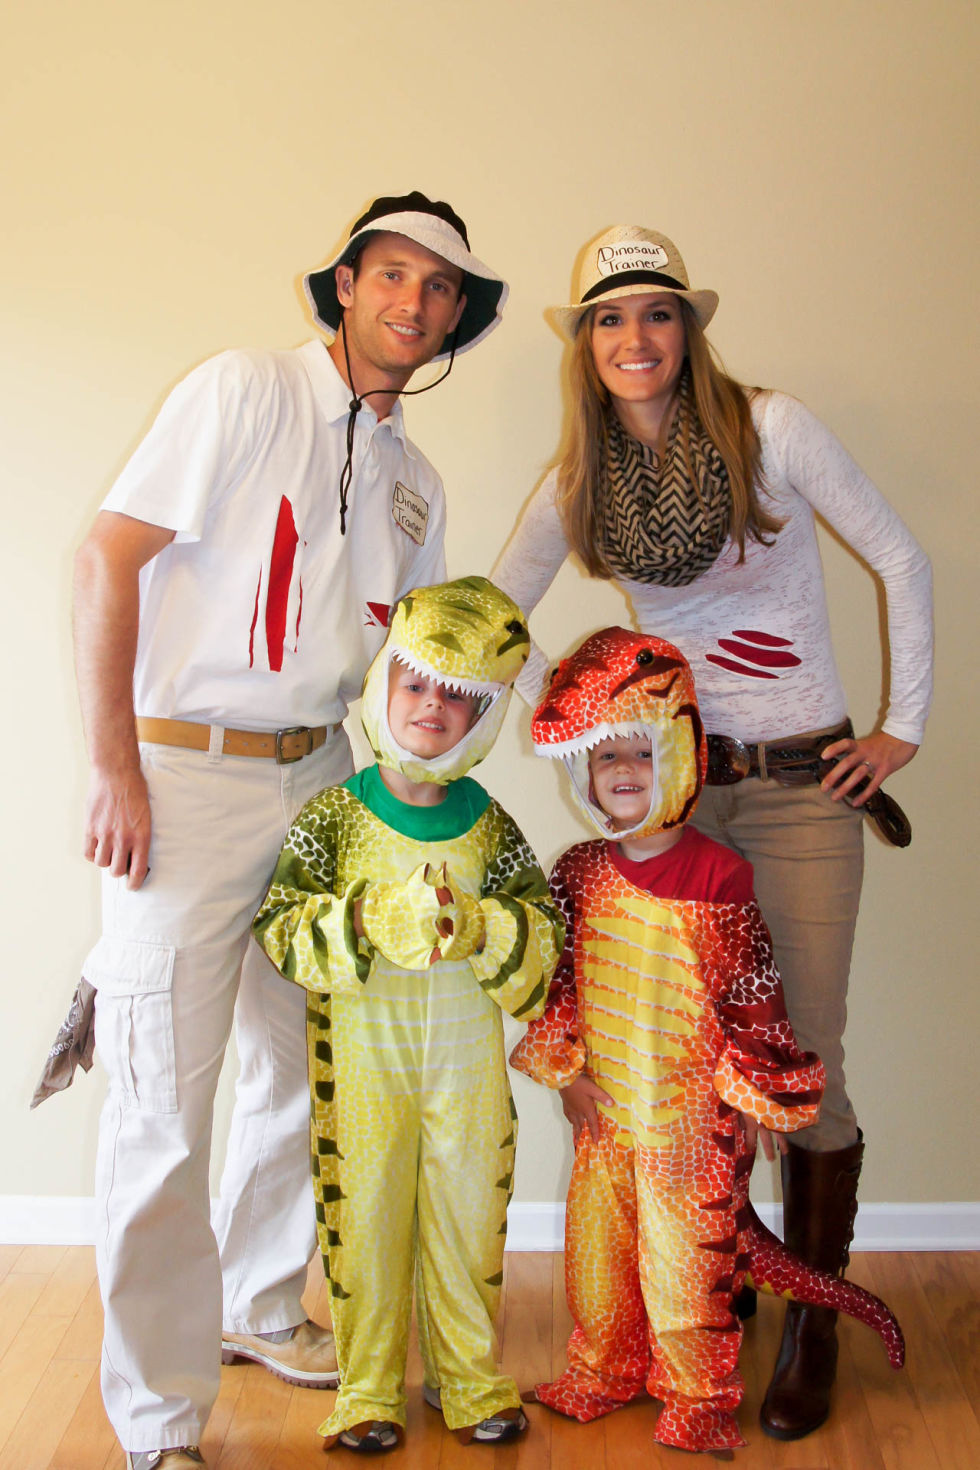 40 best family halloween costumes 2017 cute ideas for themed costumes for families - Baby And Family Halloween Costumes